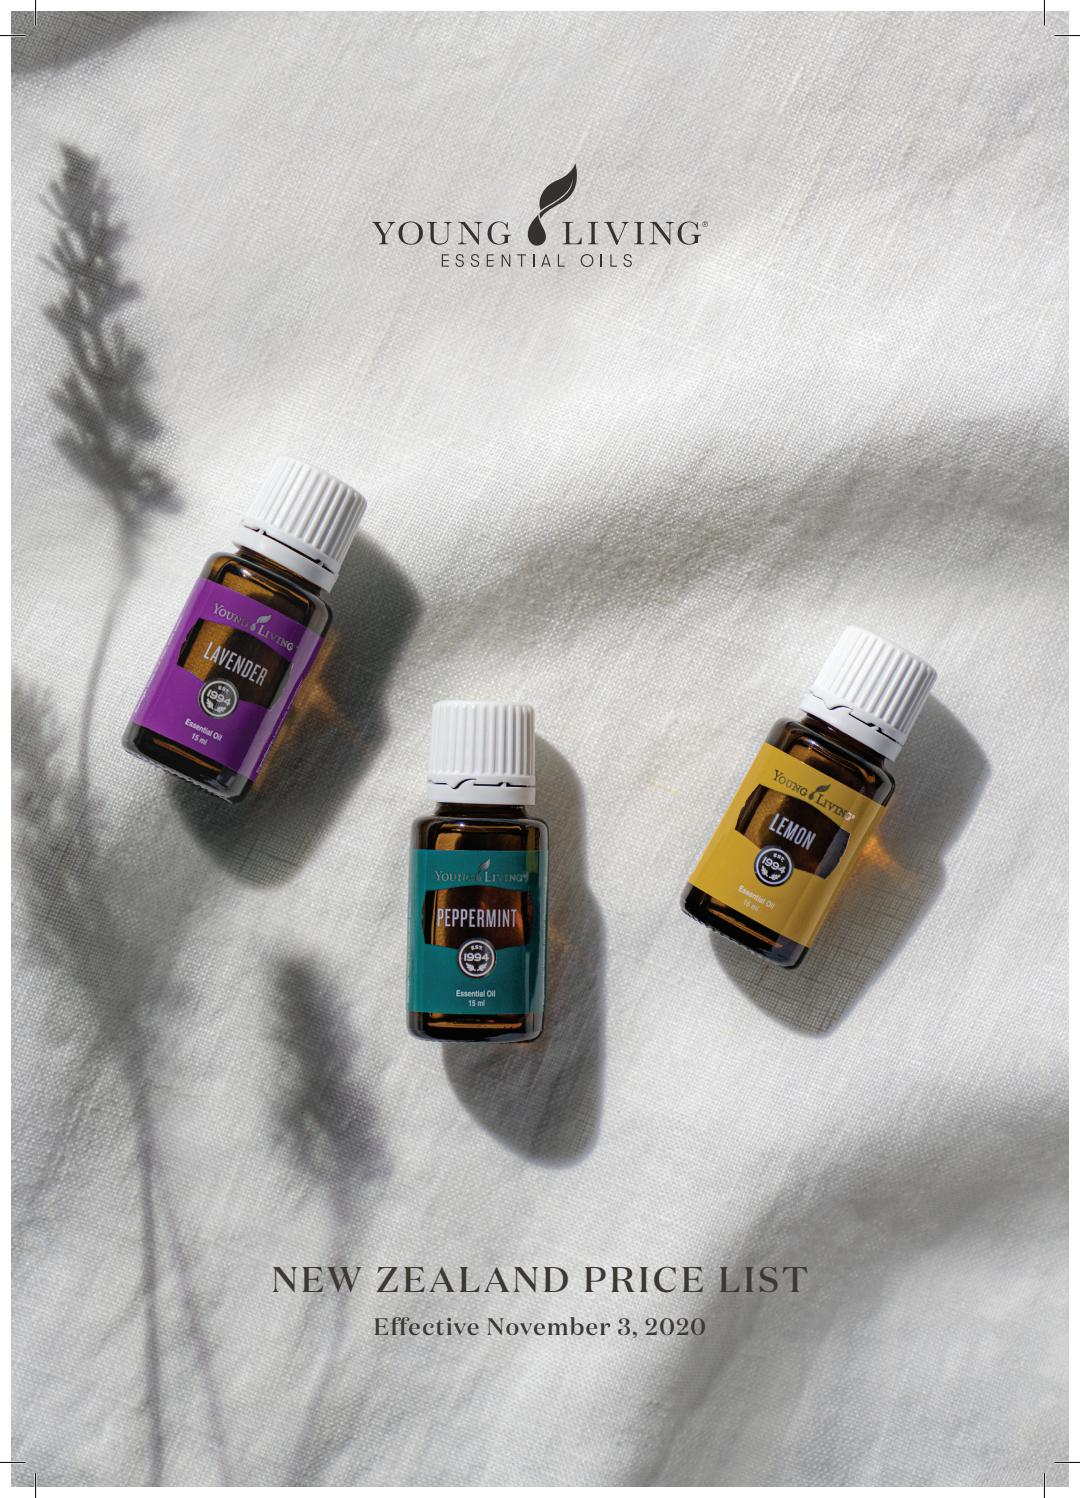 New Zealand Product Price List By Young Living Essential Oils Australia New Zealand Issuu